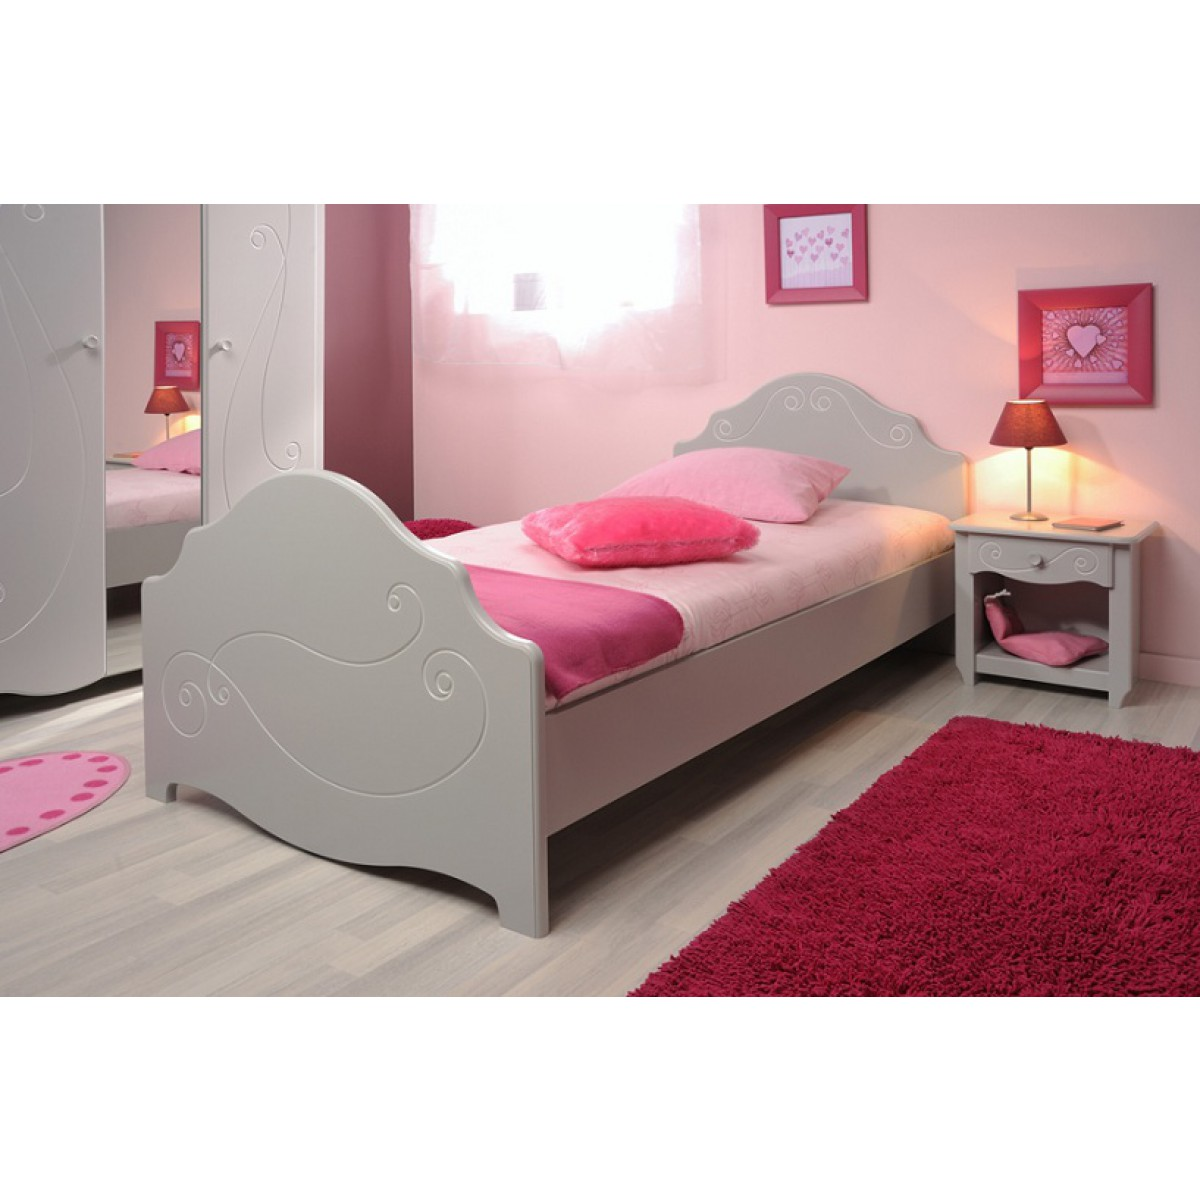 Terre lit fille 90x200 alicia gris clair de nuit for Photo de lit pour fille